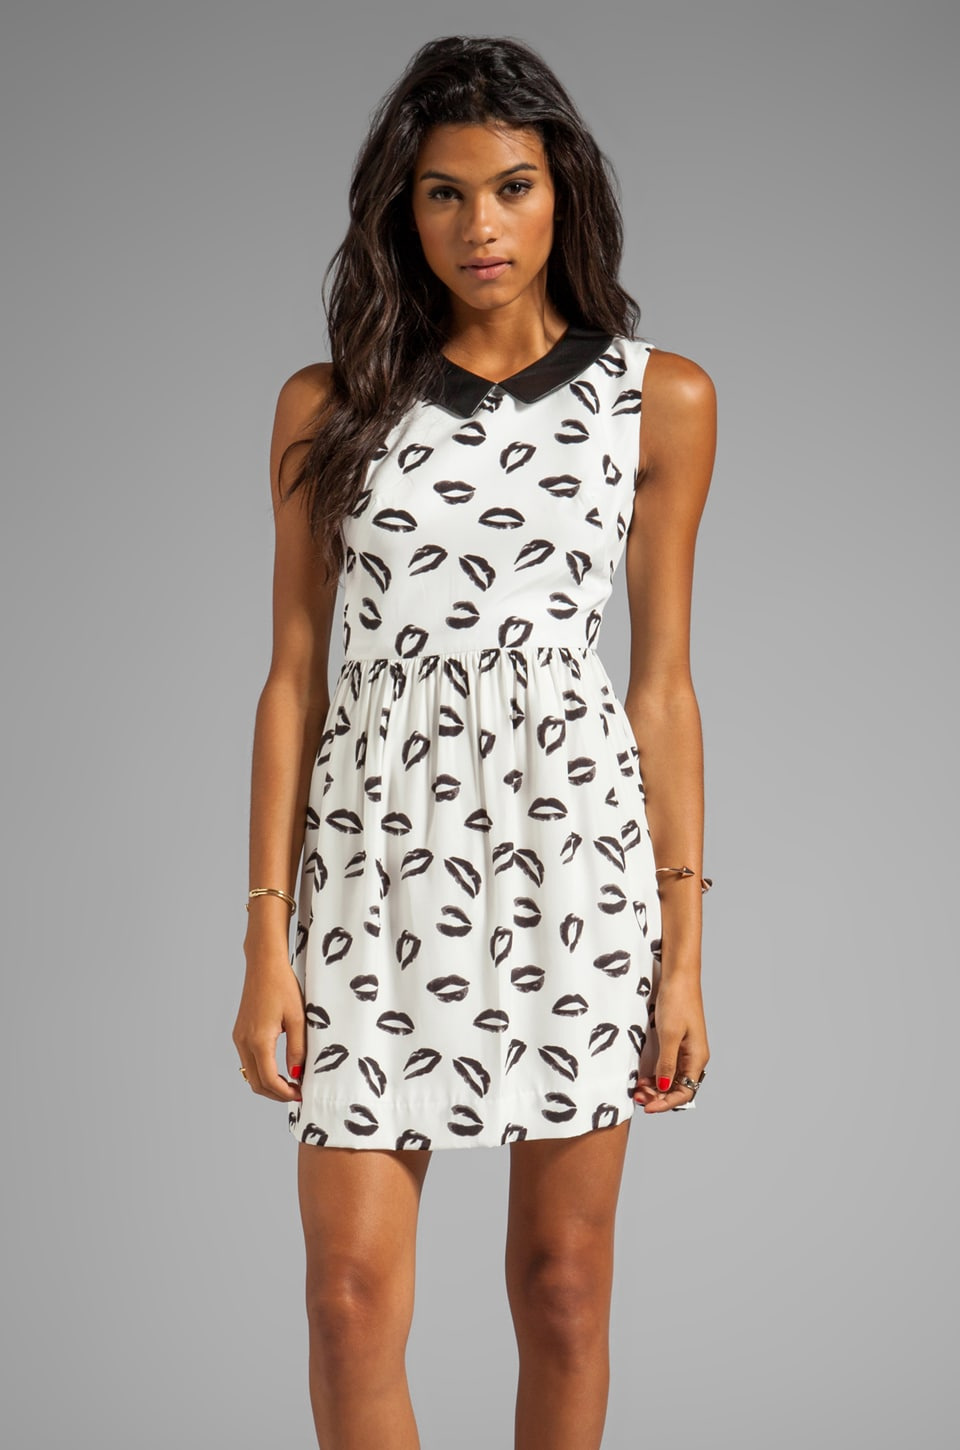 MILLY Kiss Print Leather Collar Gathered Skirt Dress in Black